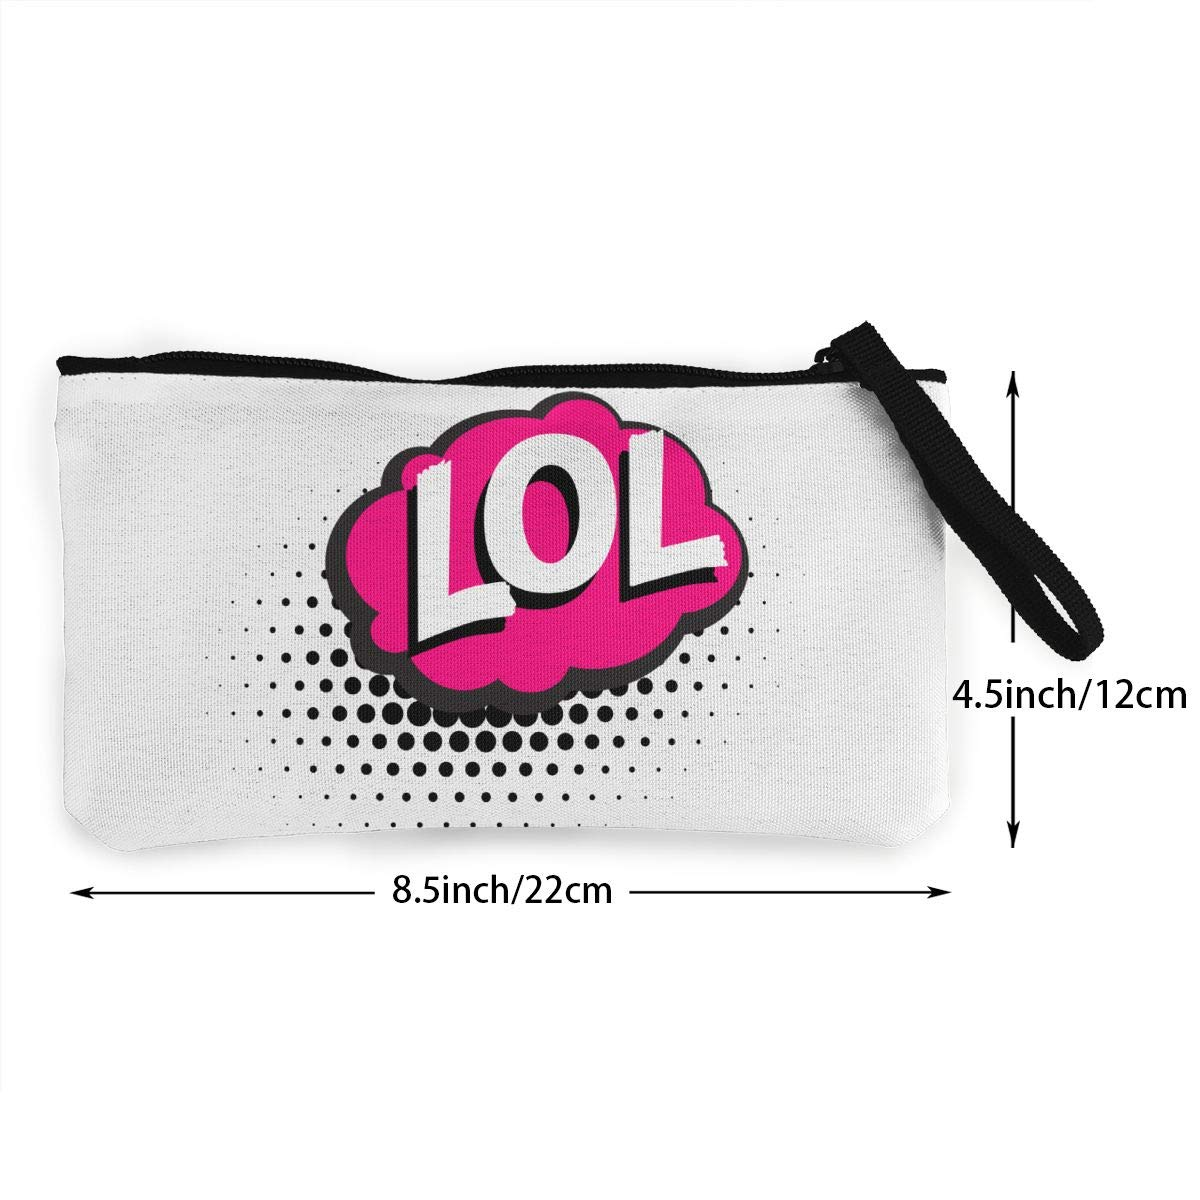 LOL Acronym Zipper Canvas Coin Purse Wallet Make Up Bag,Cellphone Bag With Handle